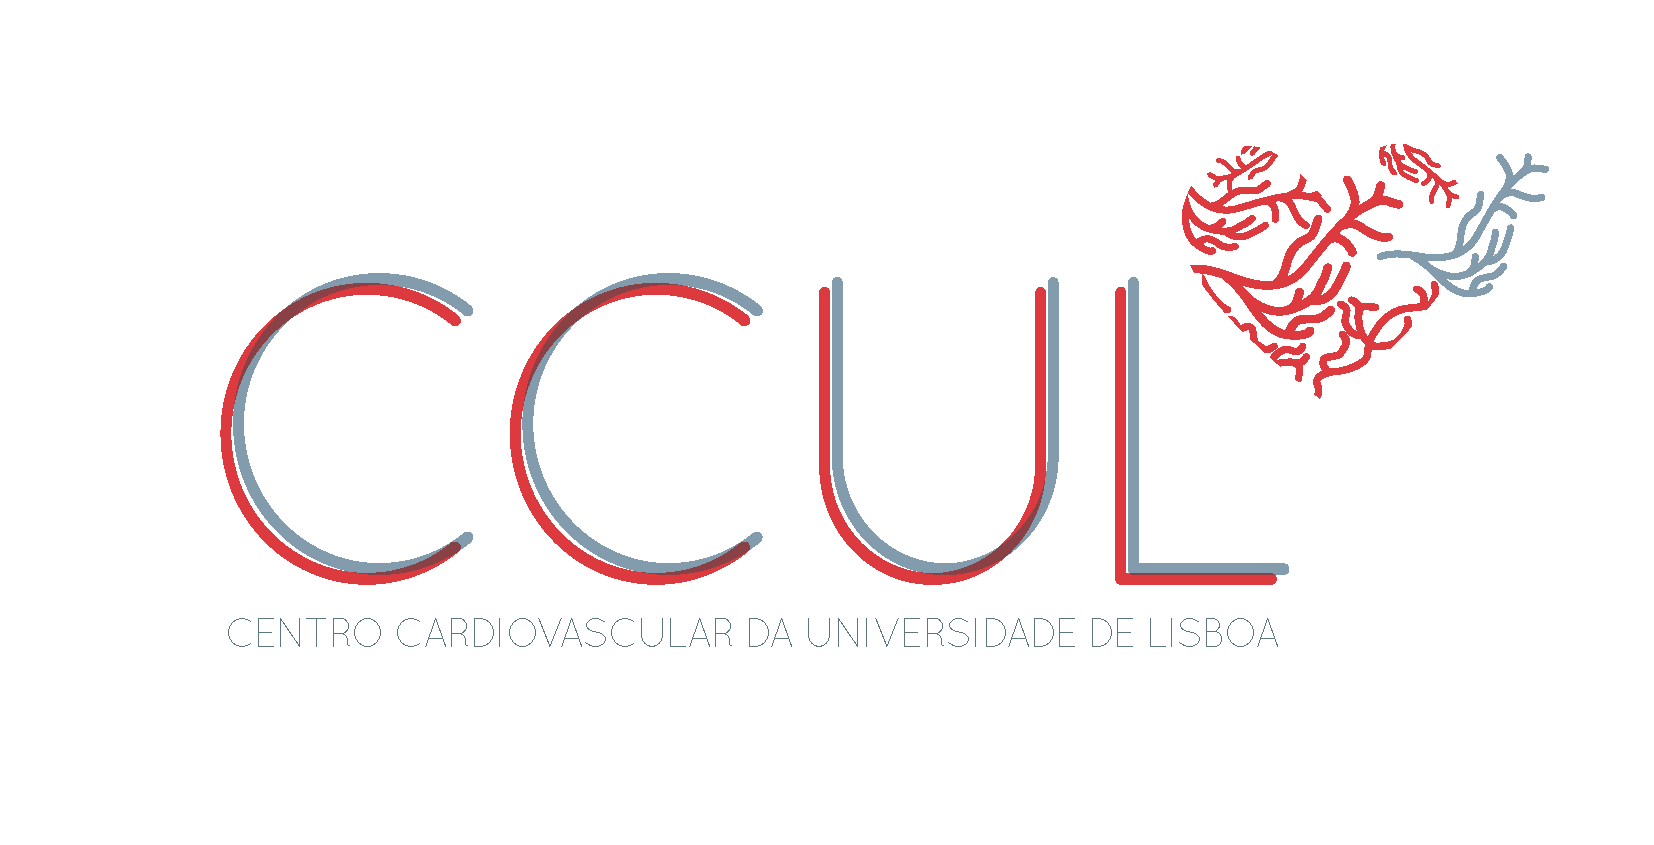 logo5_CCUL_logo_final_alta%20resolucao